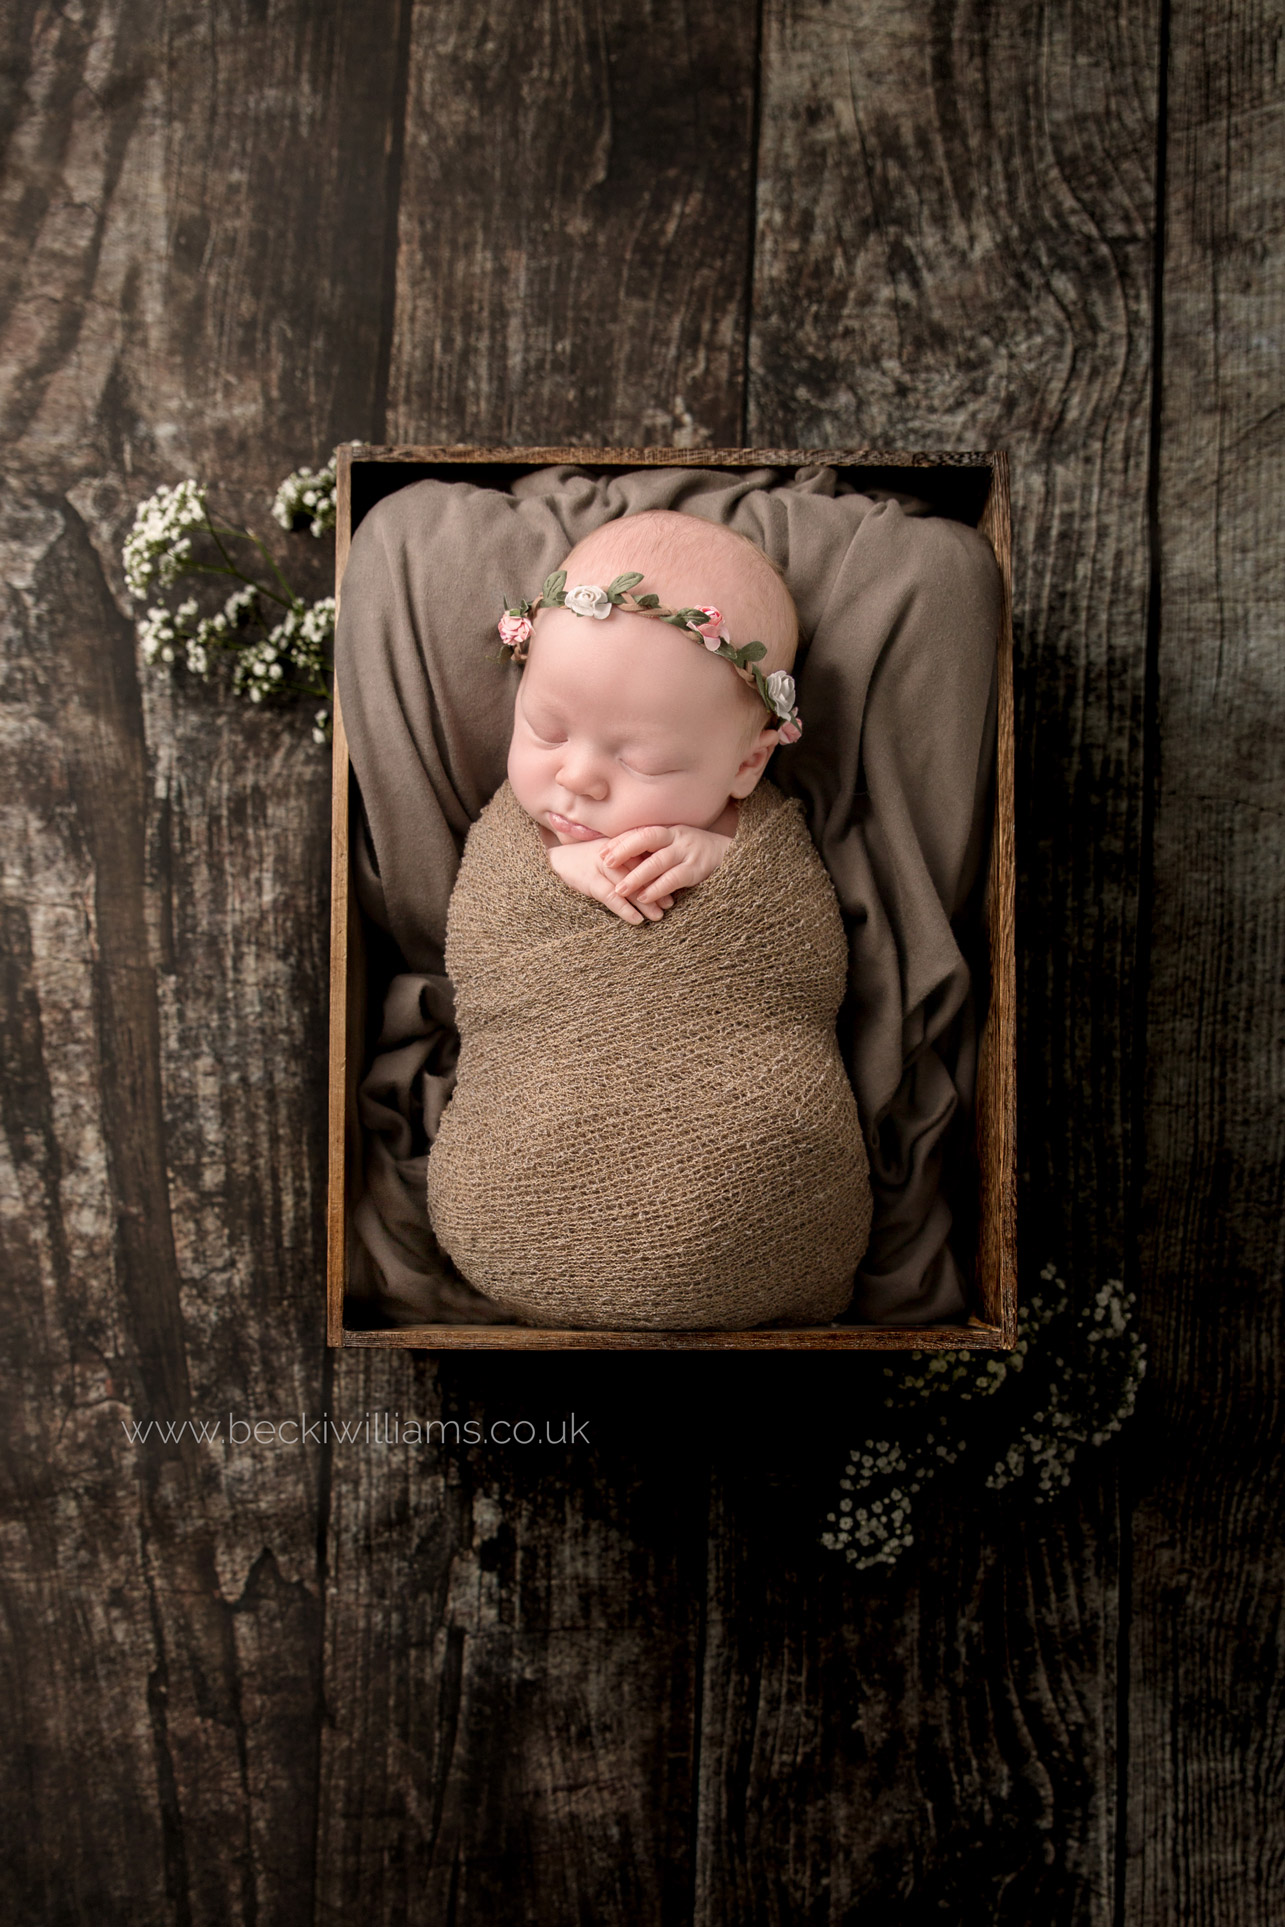 newborn girl laying in a brown crate with a flower headband for her newborn photo shoot in hemel hempstead